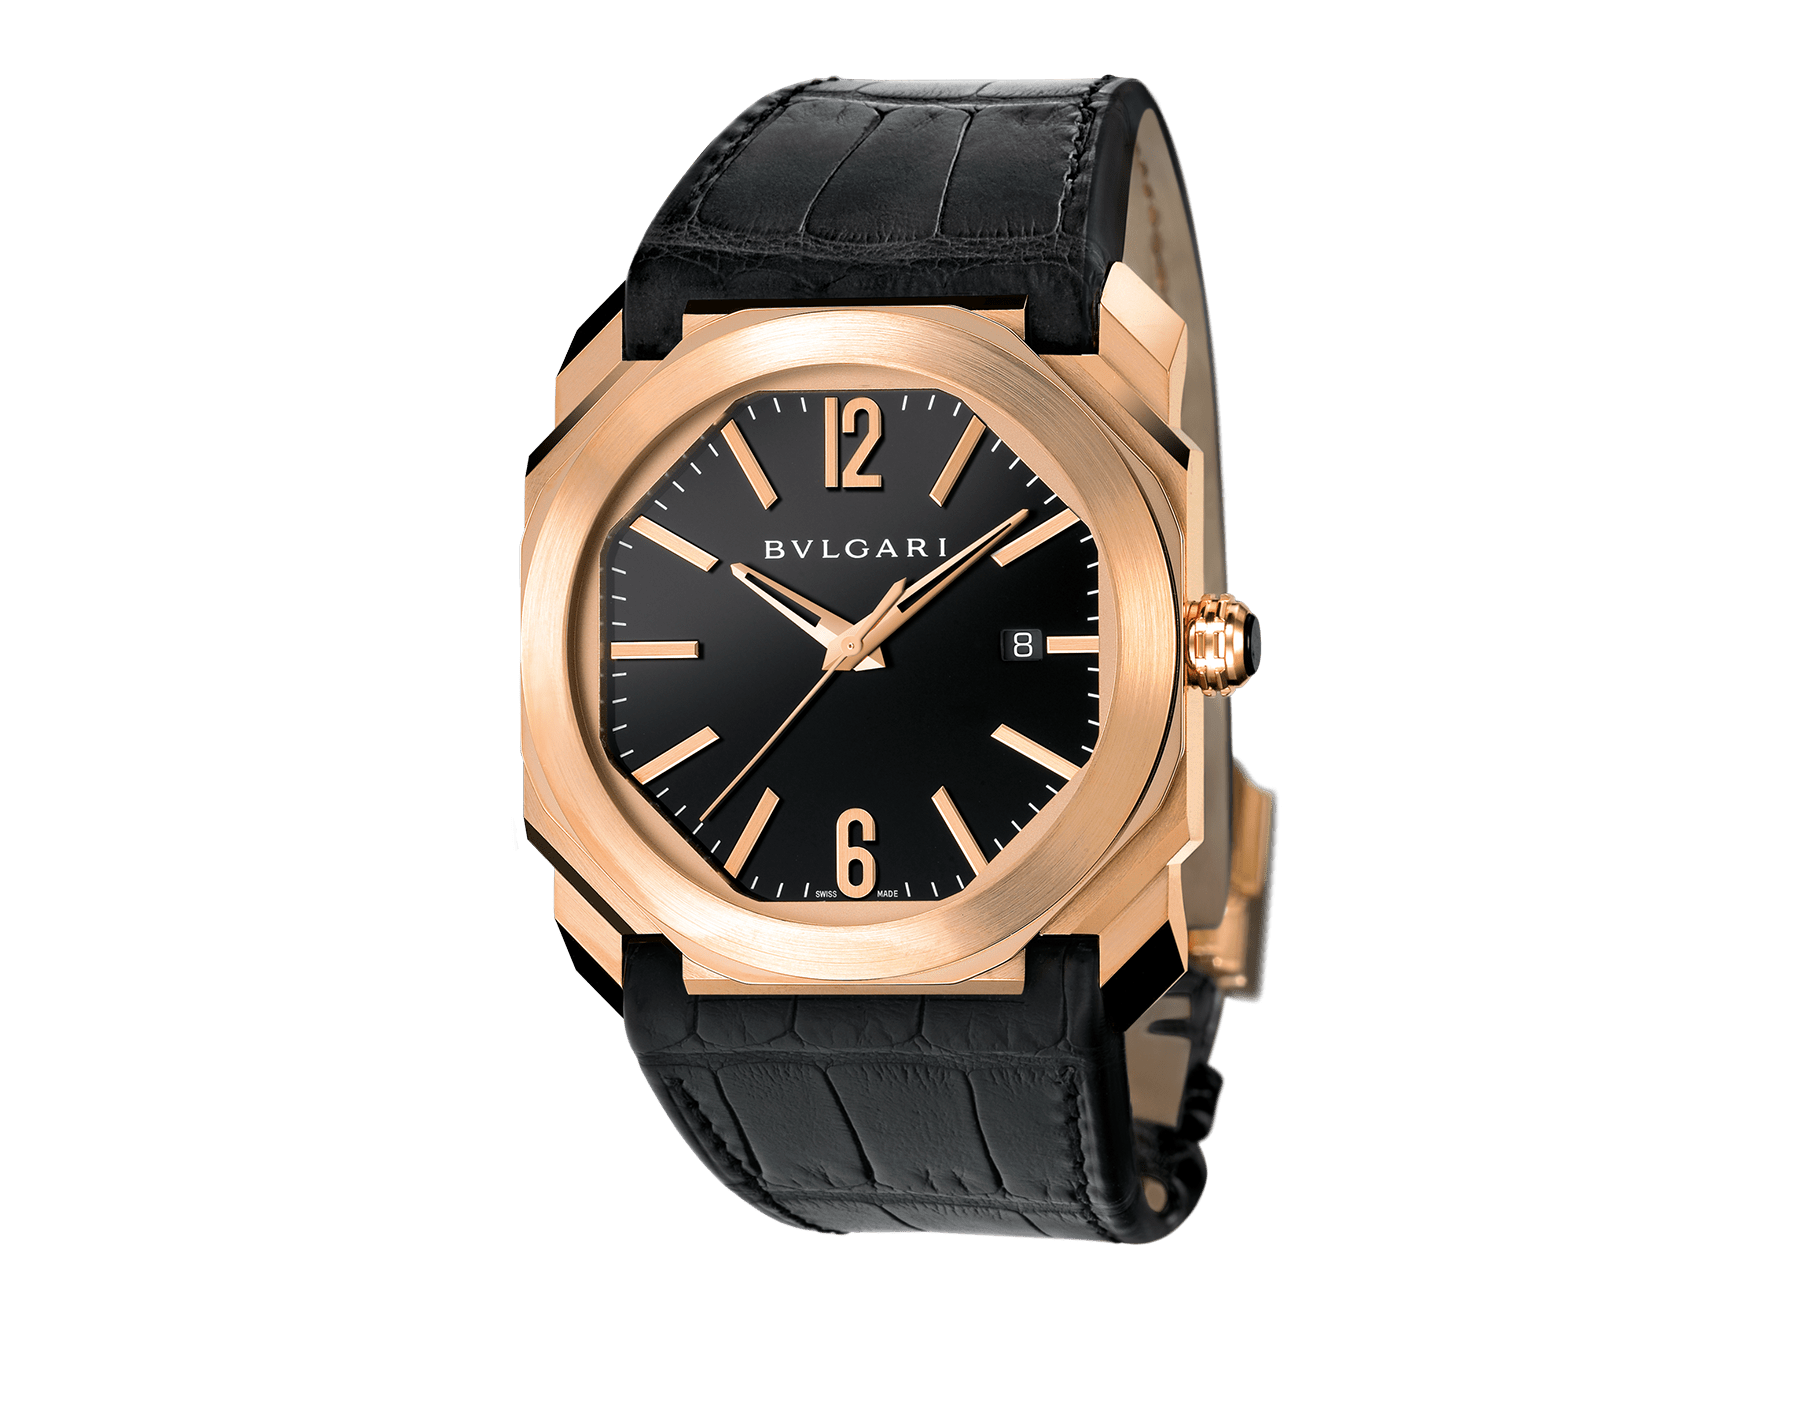 Octo watch with mechanical manufacture movement, automatic winding and date, 18 kt rose gold case, black lacquered dial and black alligator bracelet. 101963 image 1